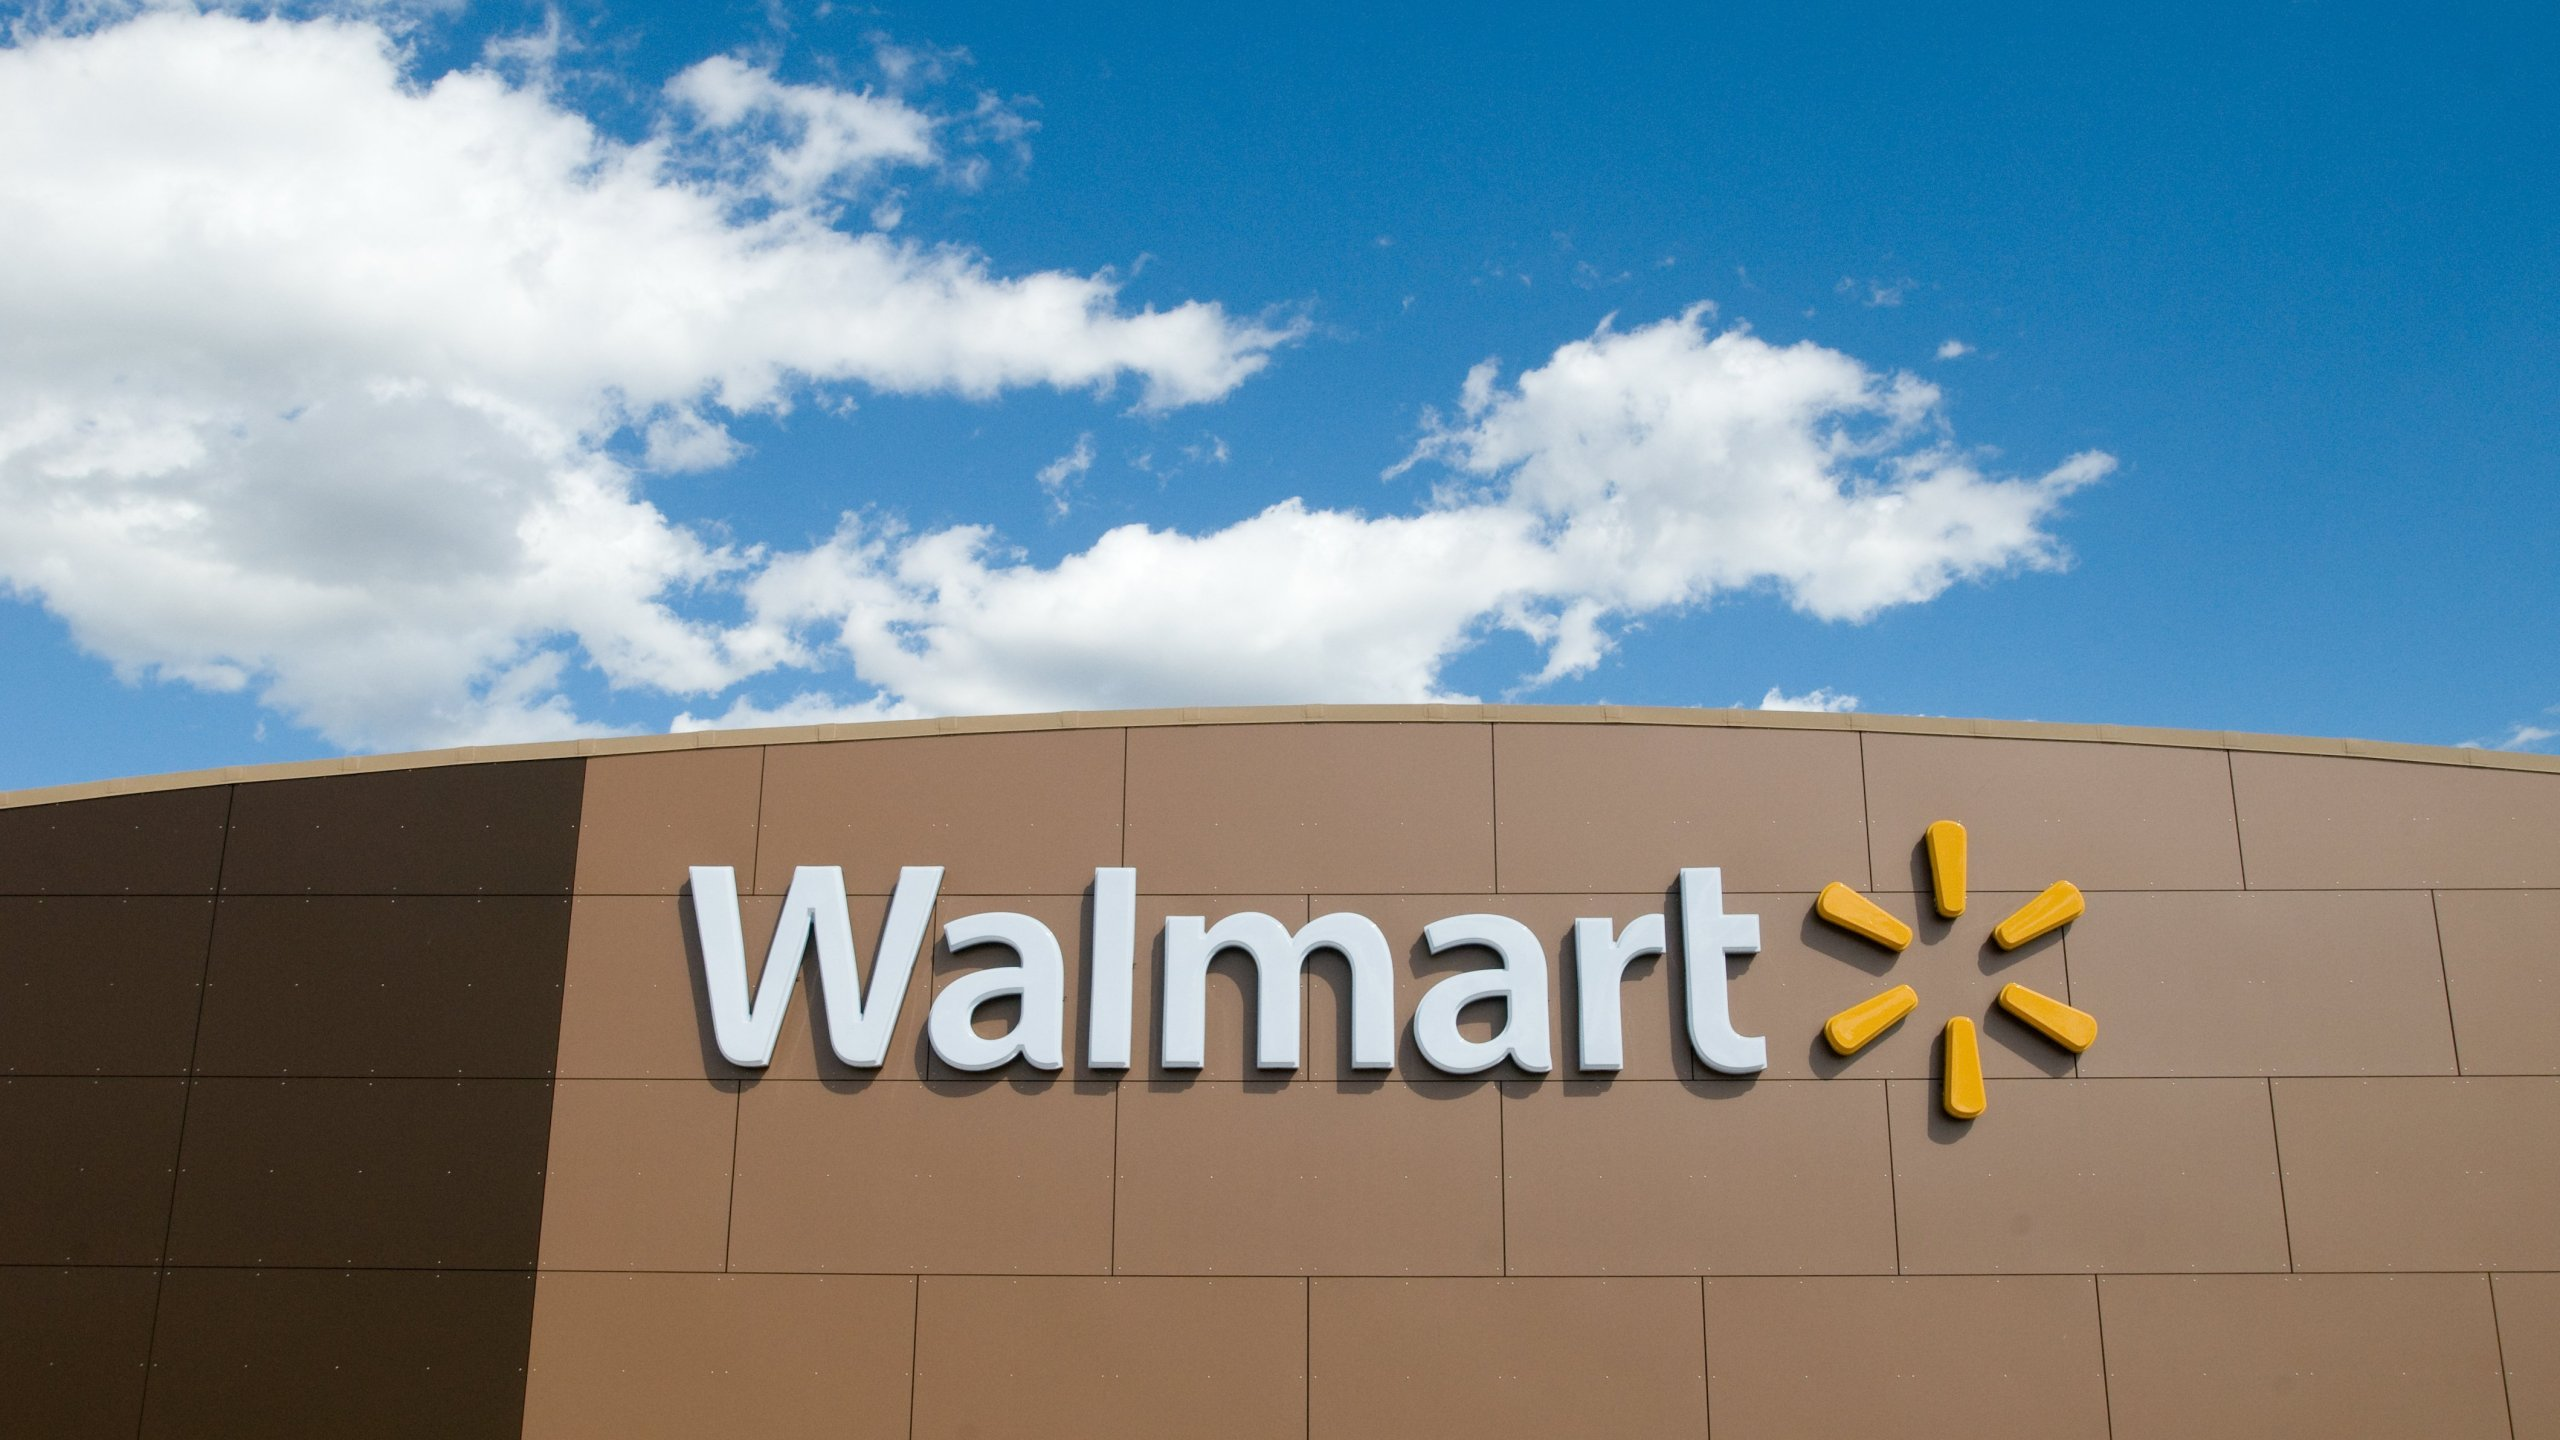 Walmart Extends Christmas Eve Hours Will Be Closed On Christmas Day Fox 4 Kansas City Wdaf Tv News Weather Sports